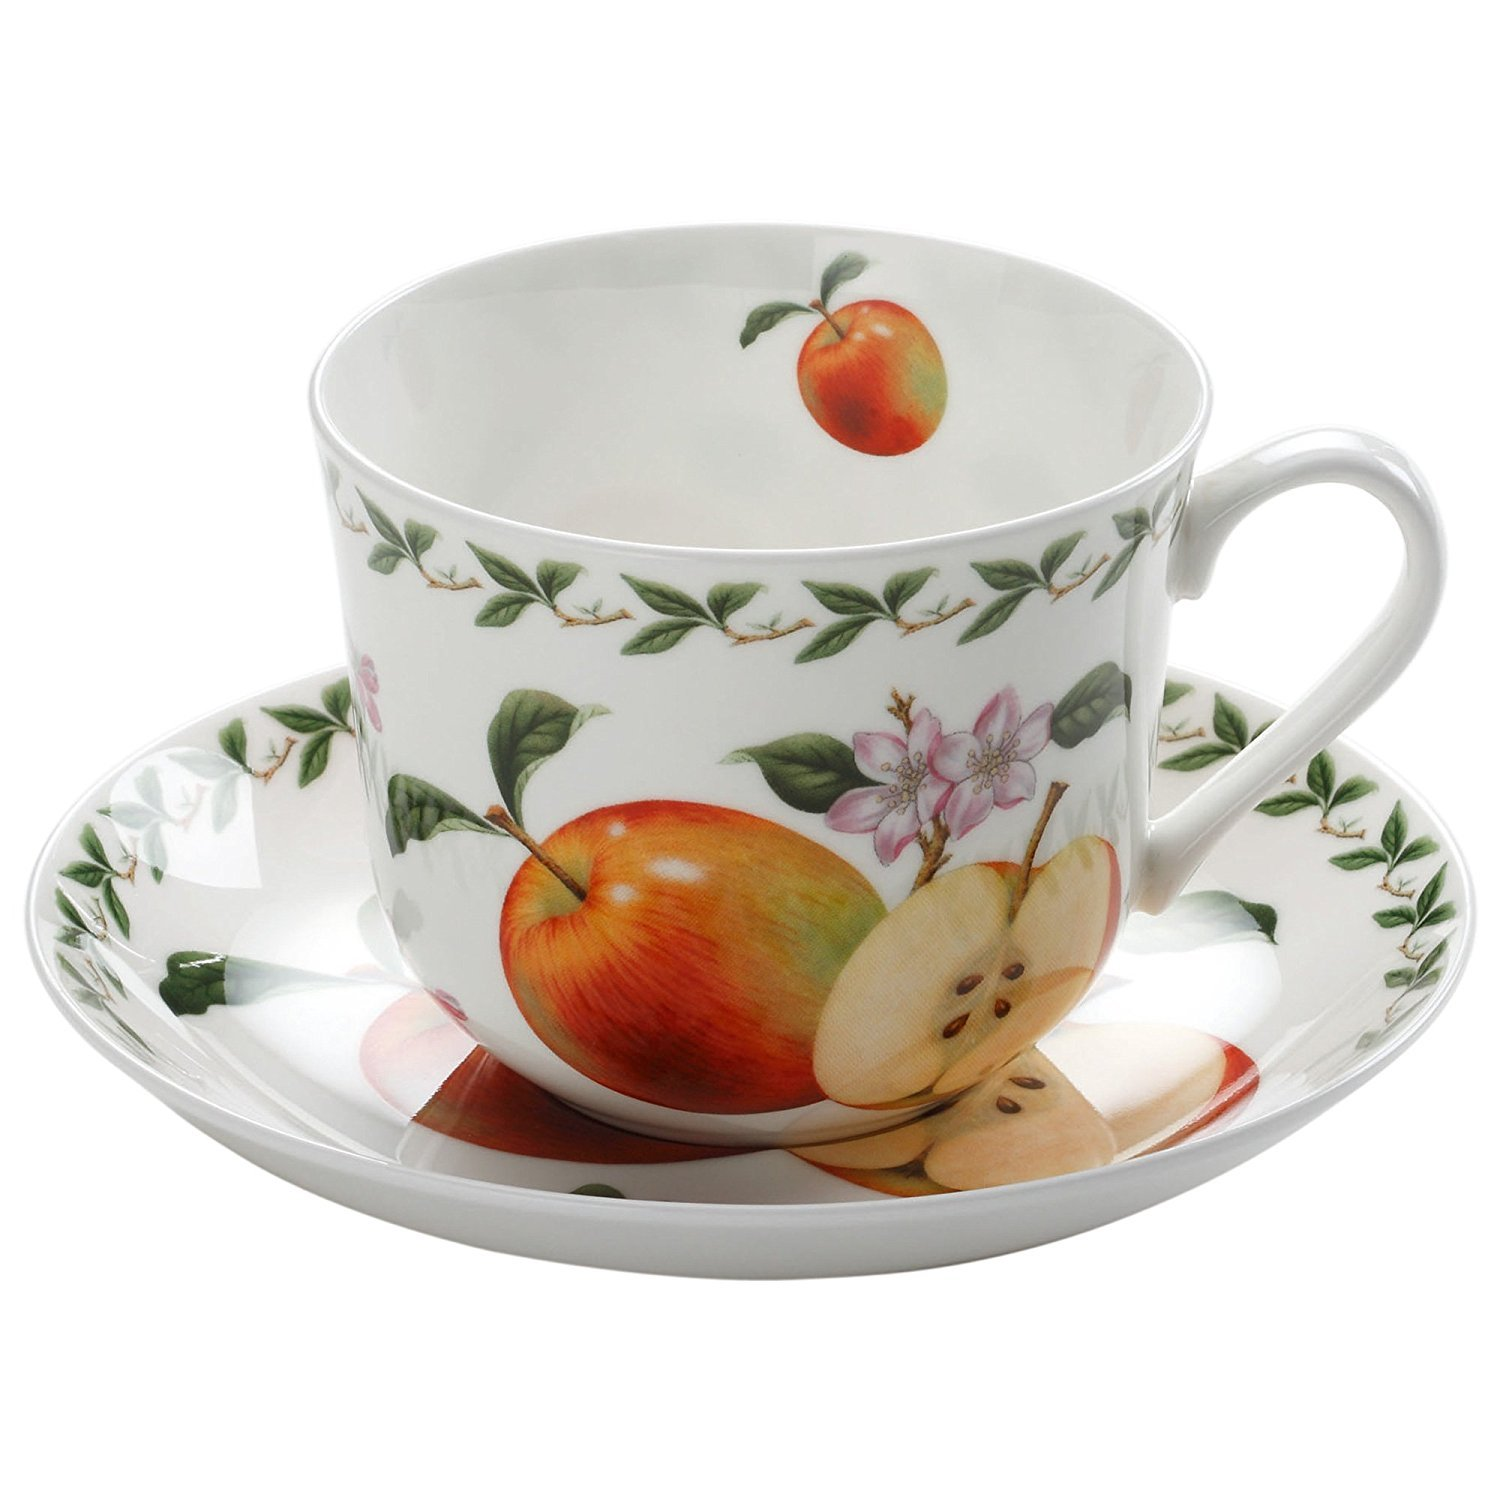 Maxwell & Williams Orchard Fruit Apple Breakfast Cup & Saucer GB, 450ml, Porcelain, PB8105